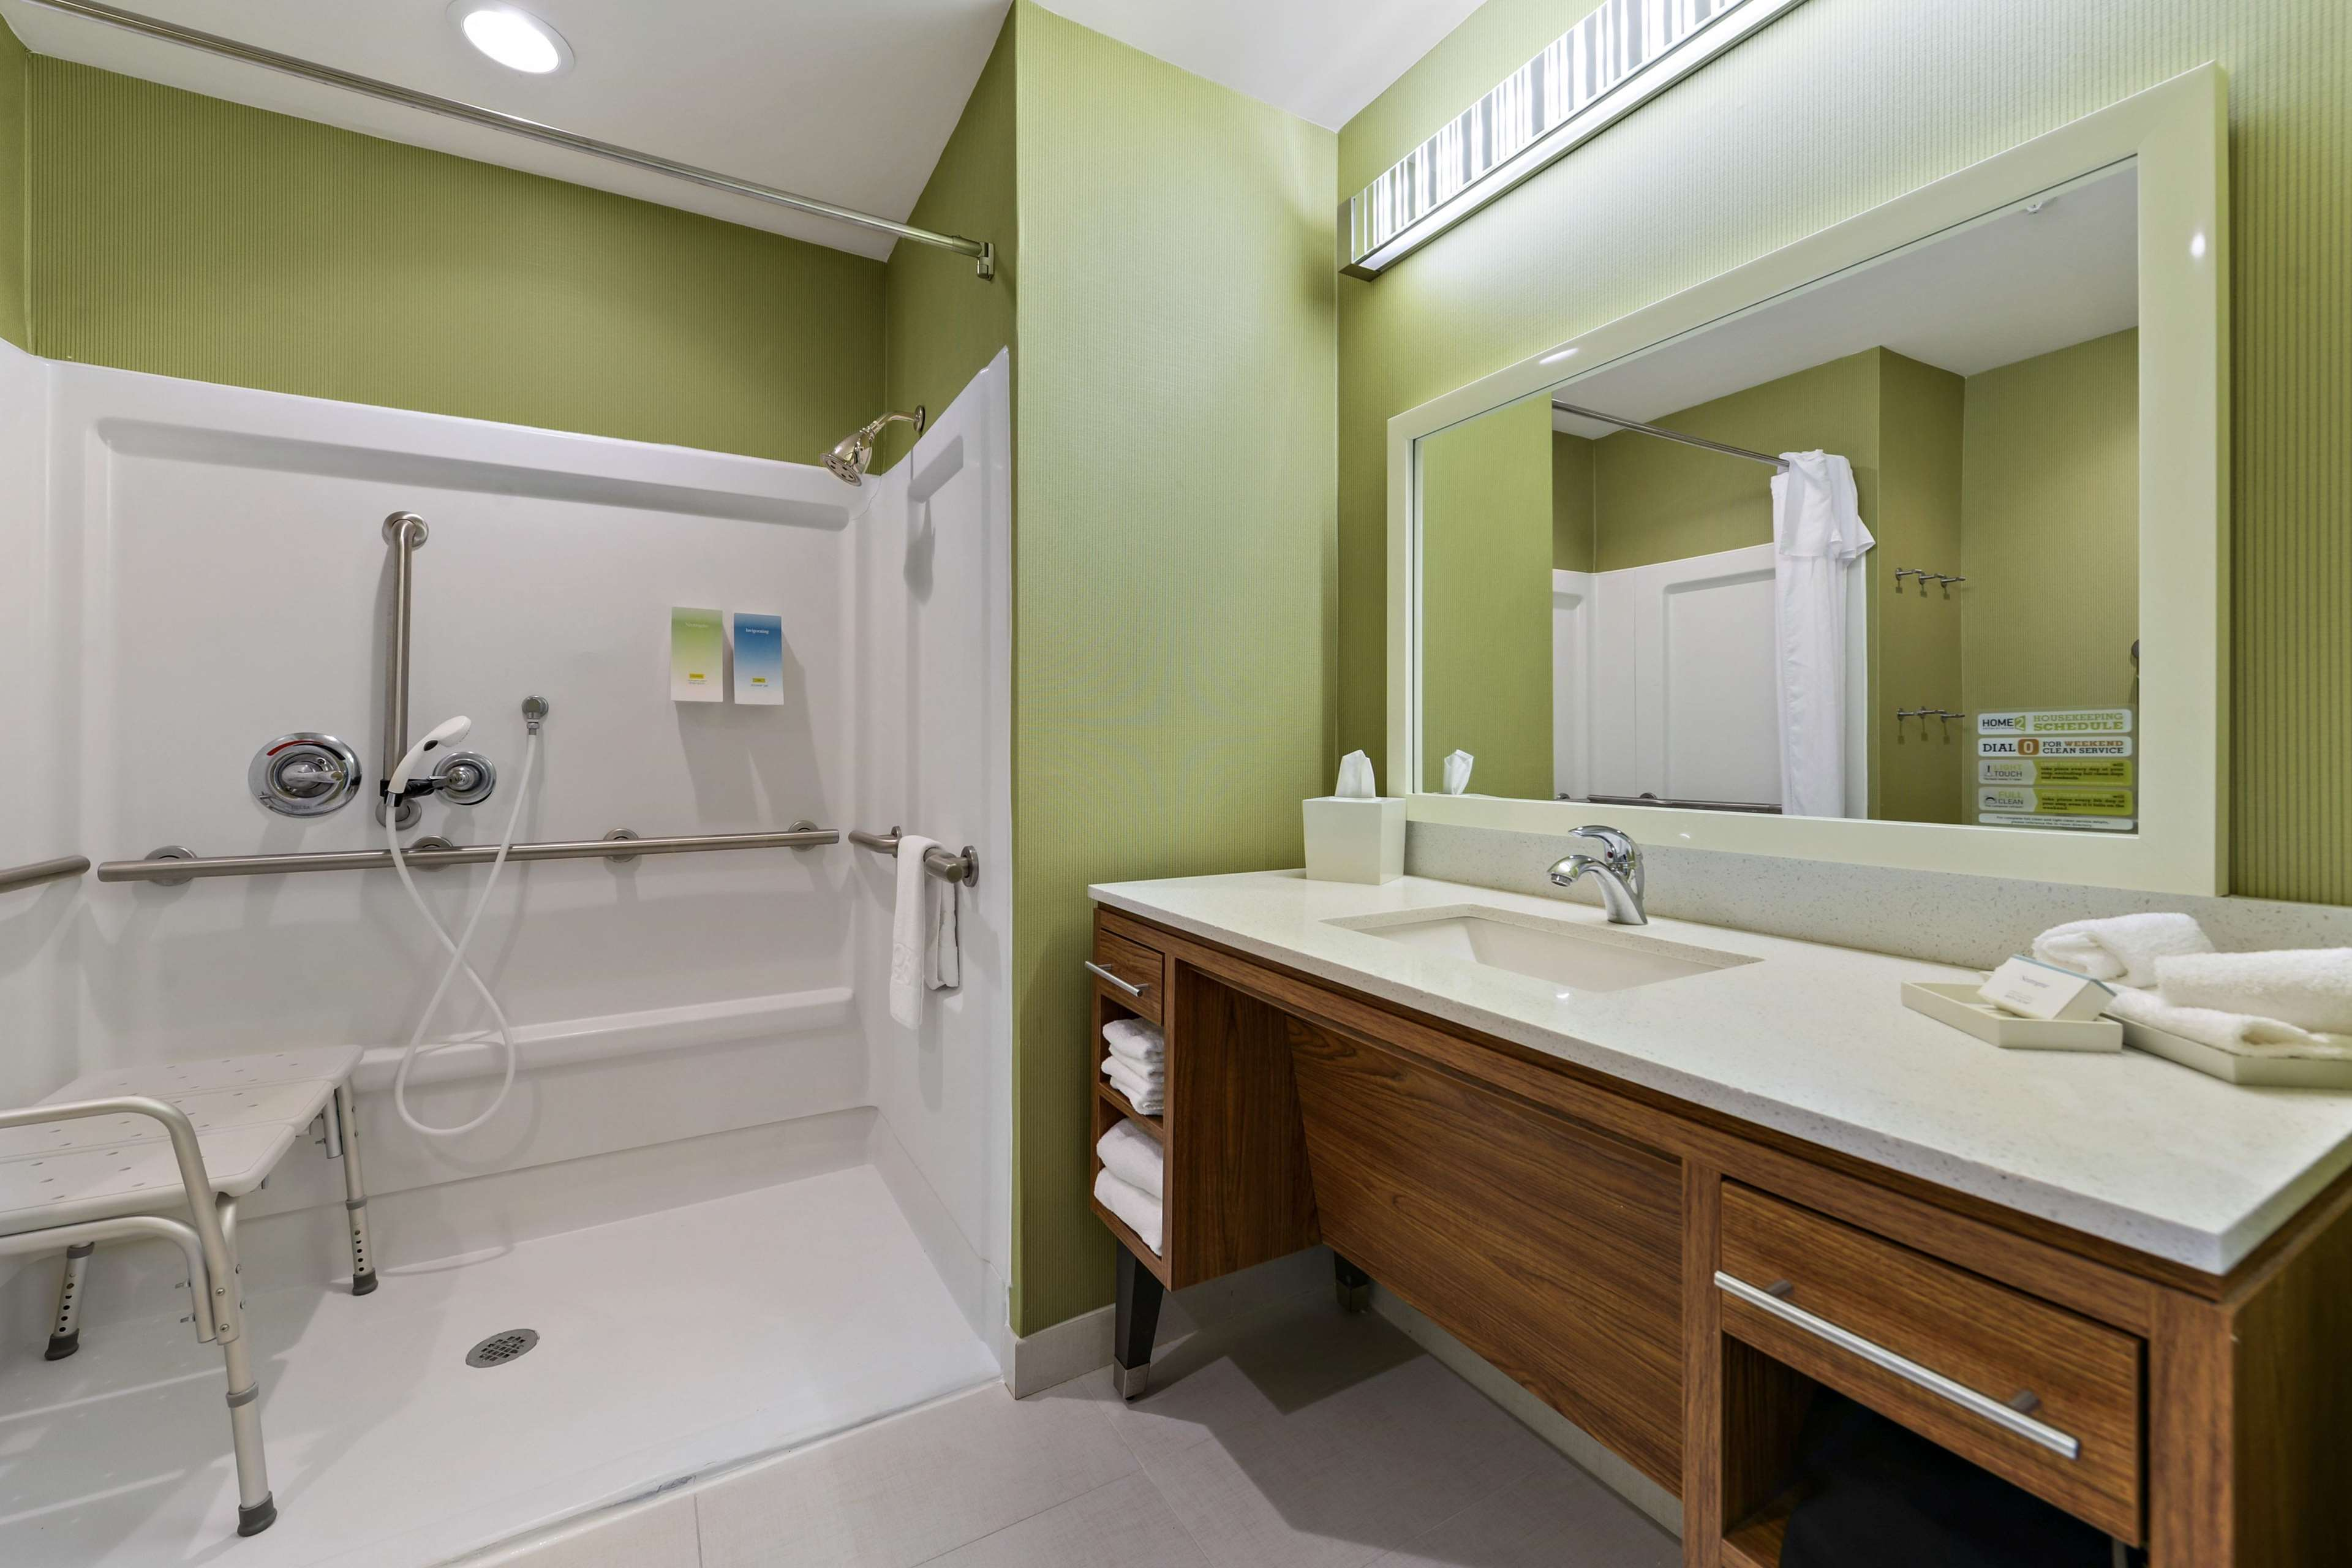 Home2 Suites by Hilton Gulfport I-10 image 38